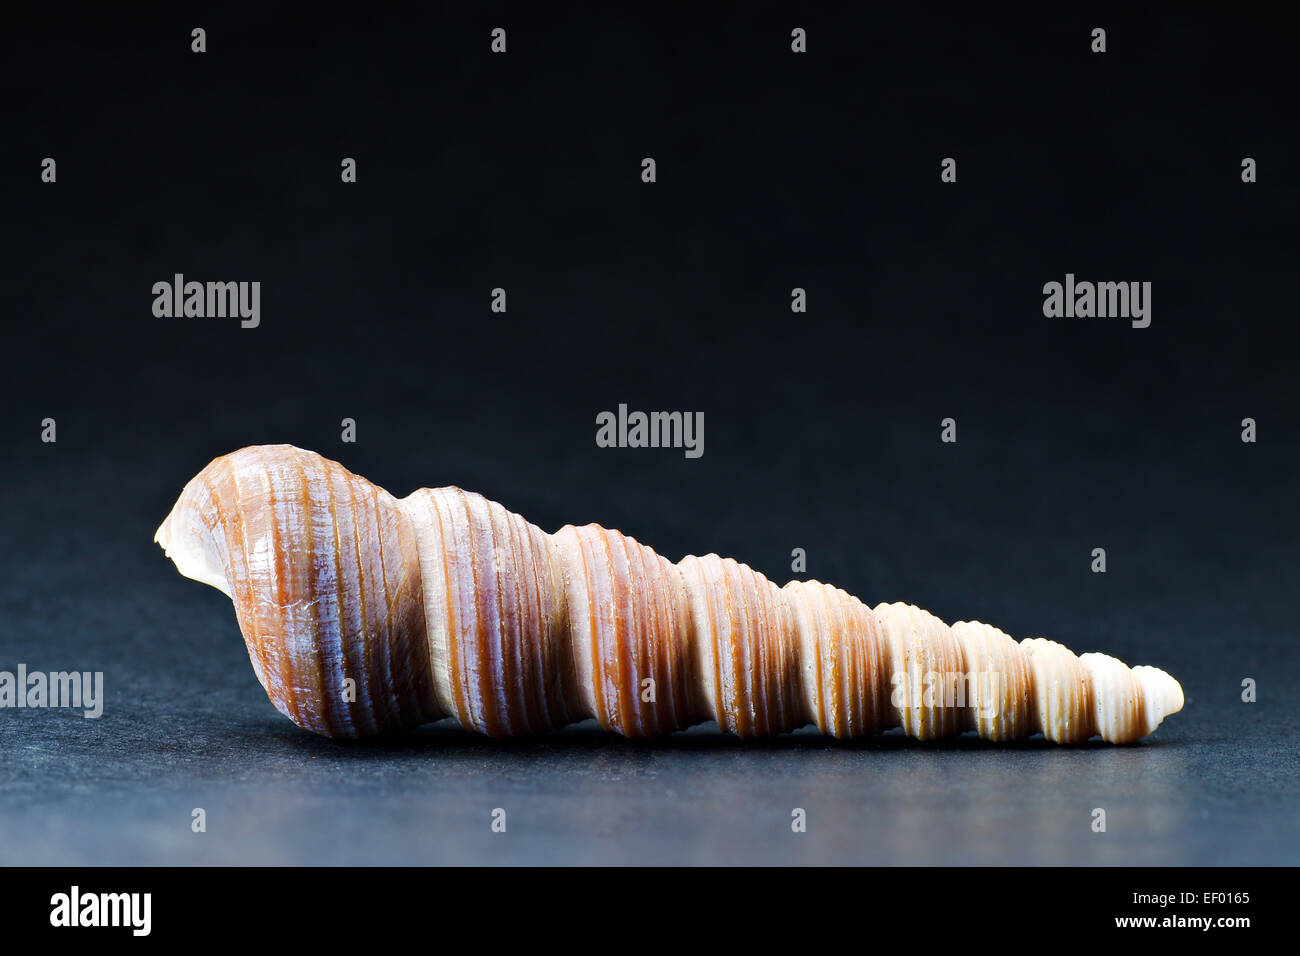 A worm housing. Stock Photo